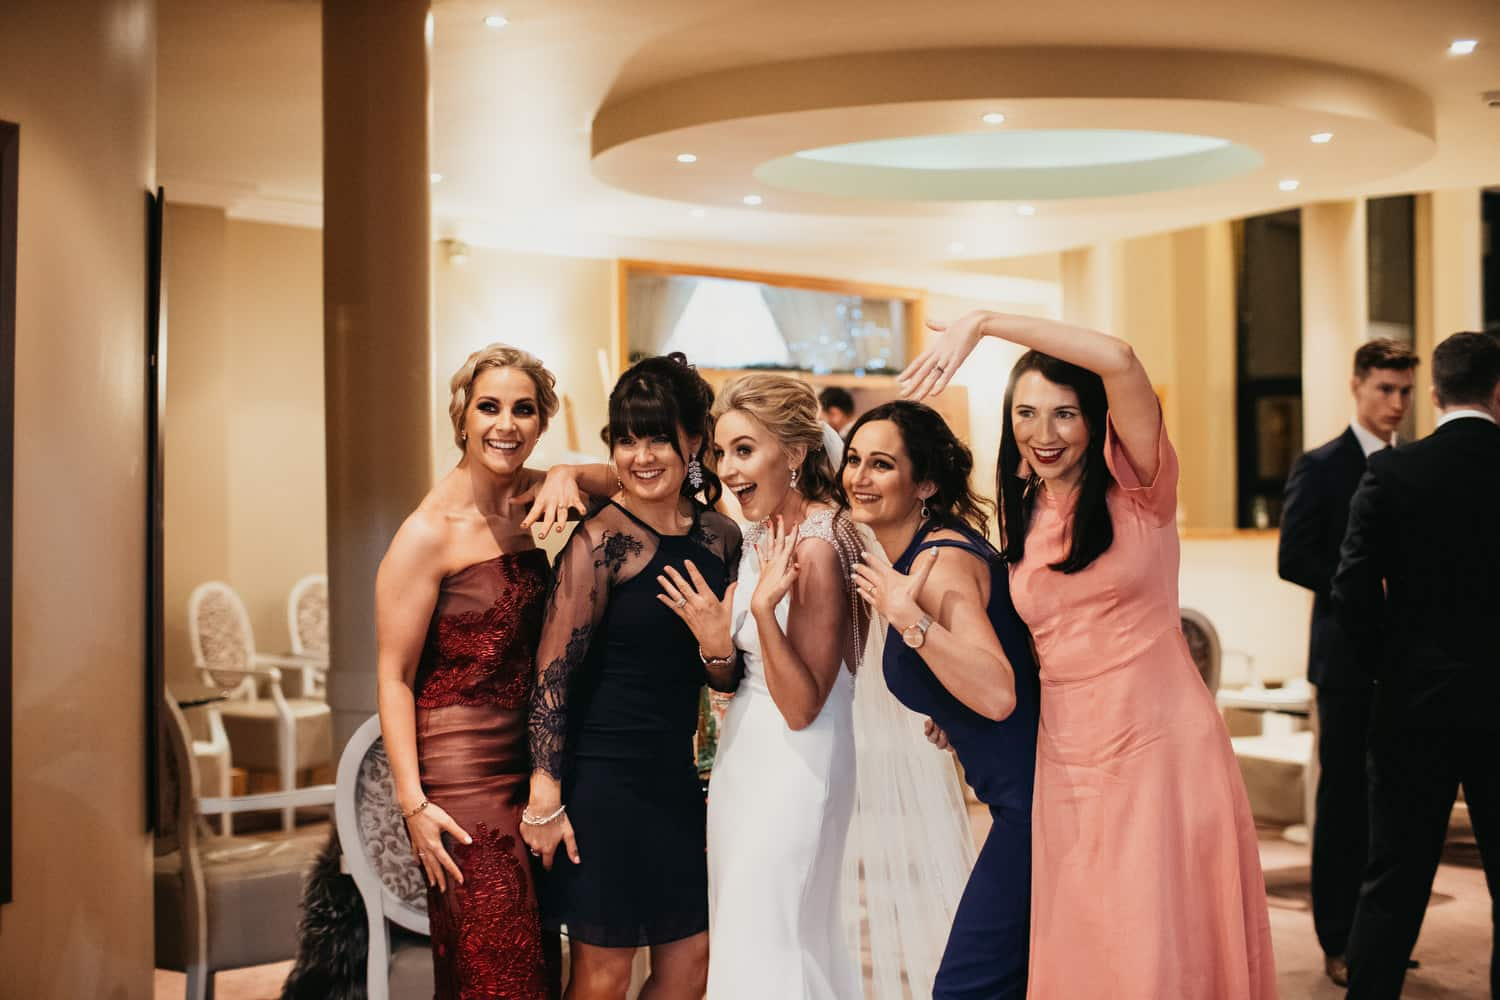 the bride takes a selfie with her friends